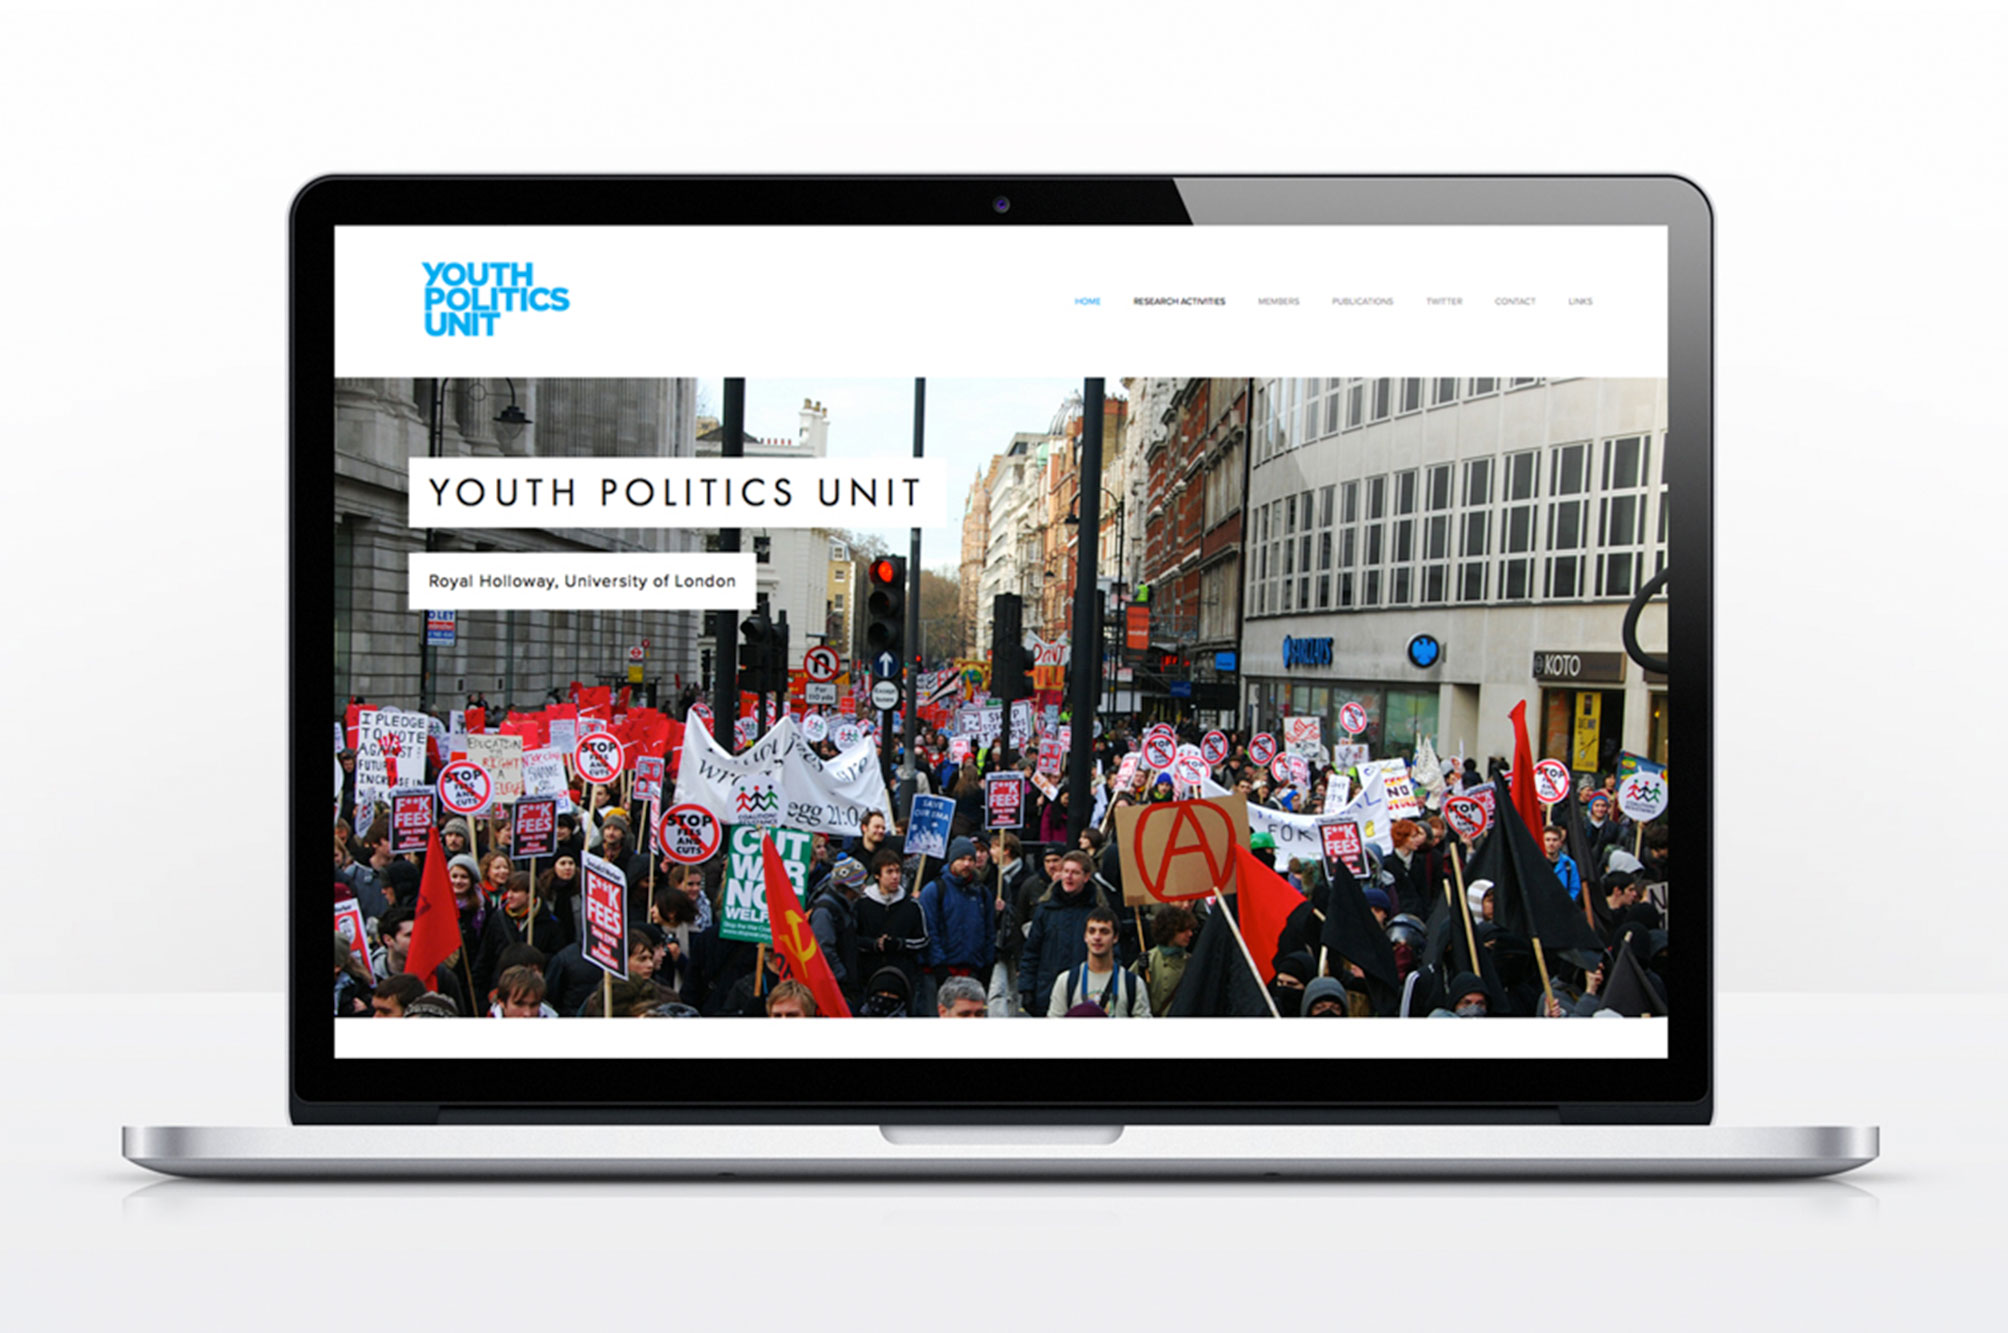 Youth Politics Unit logo on website background